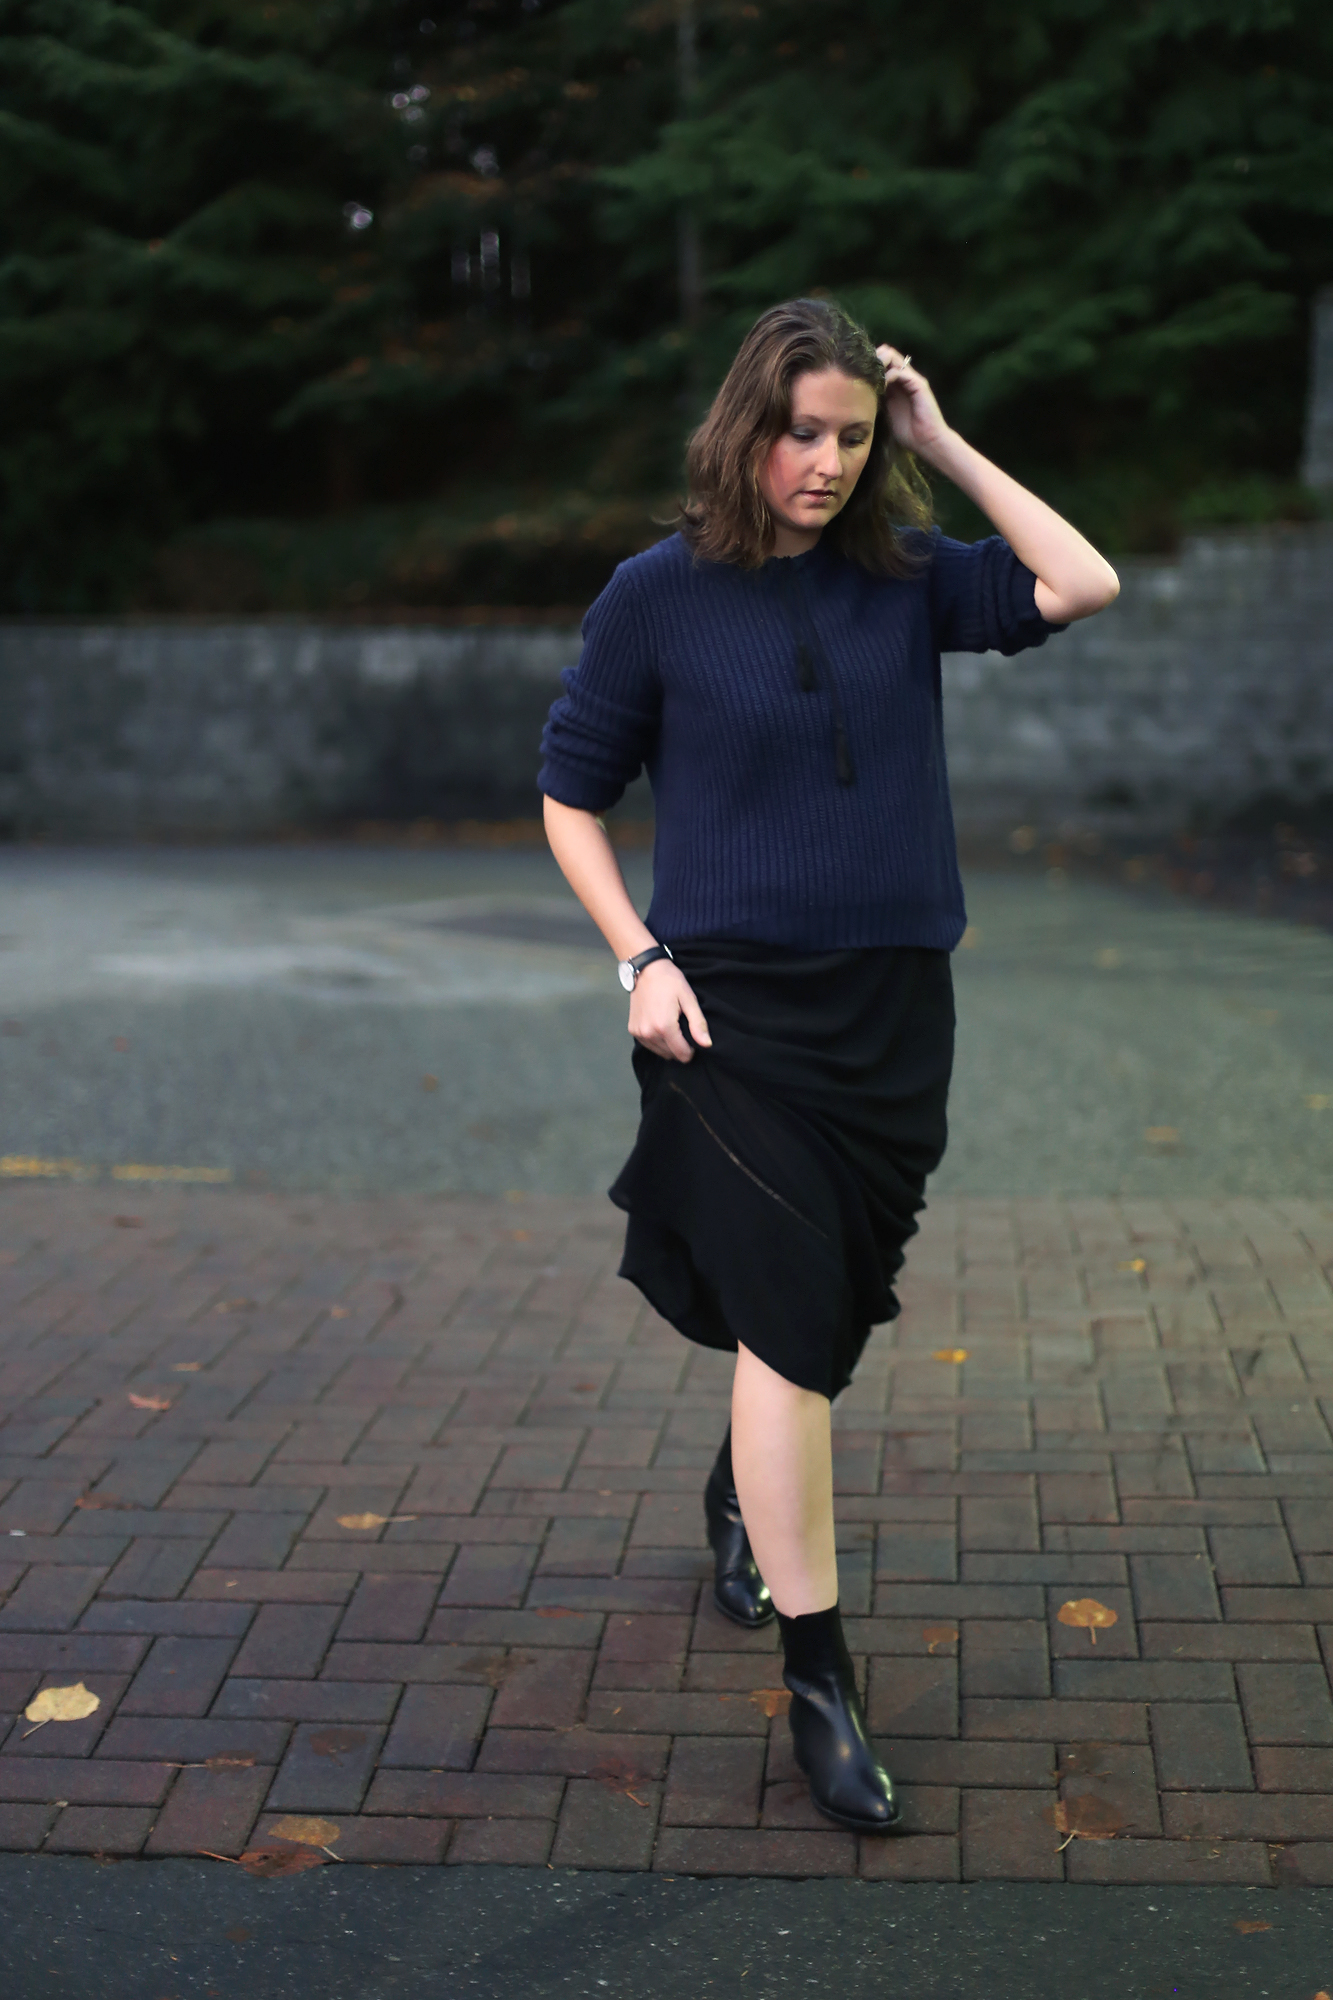 Minimalist street style: oversized sweater, black maxi dress, Alexander Wang boots, and a Daniel Wellington watch.